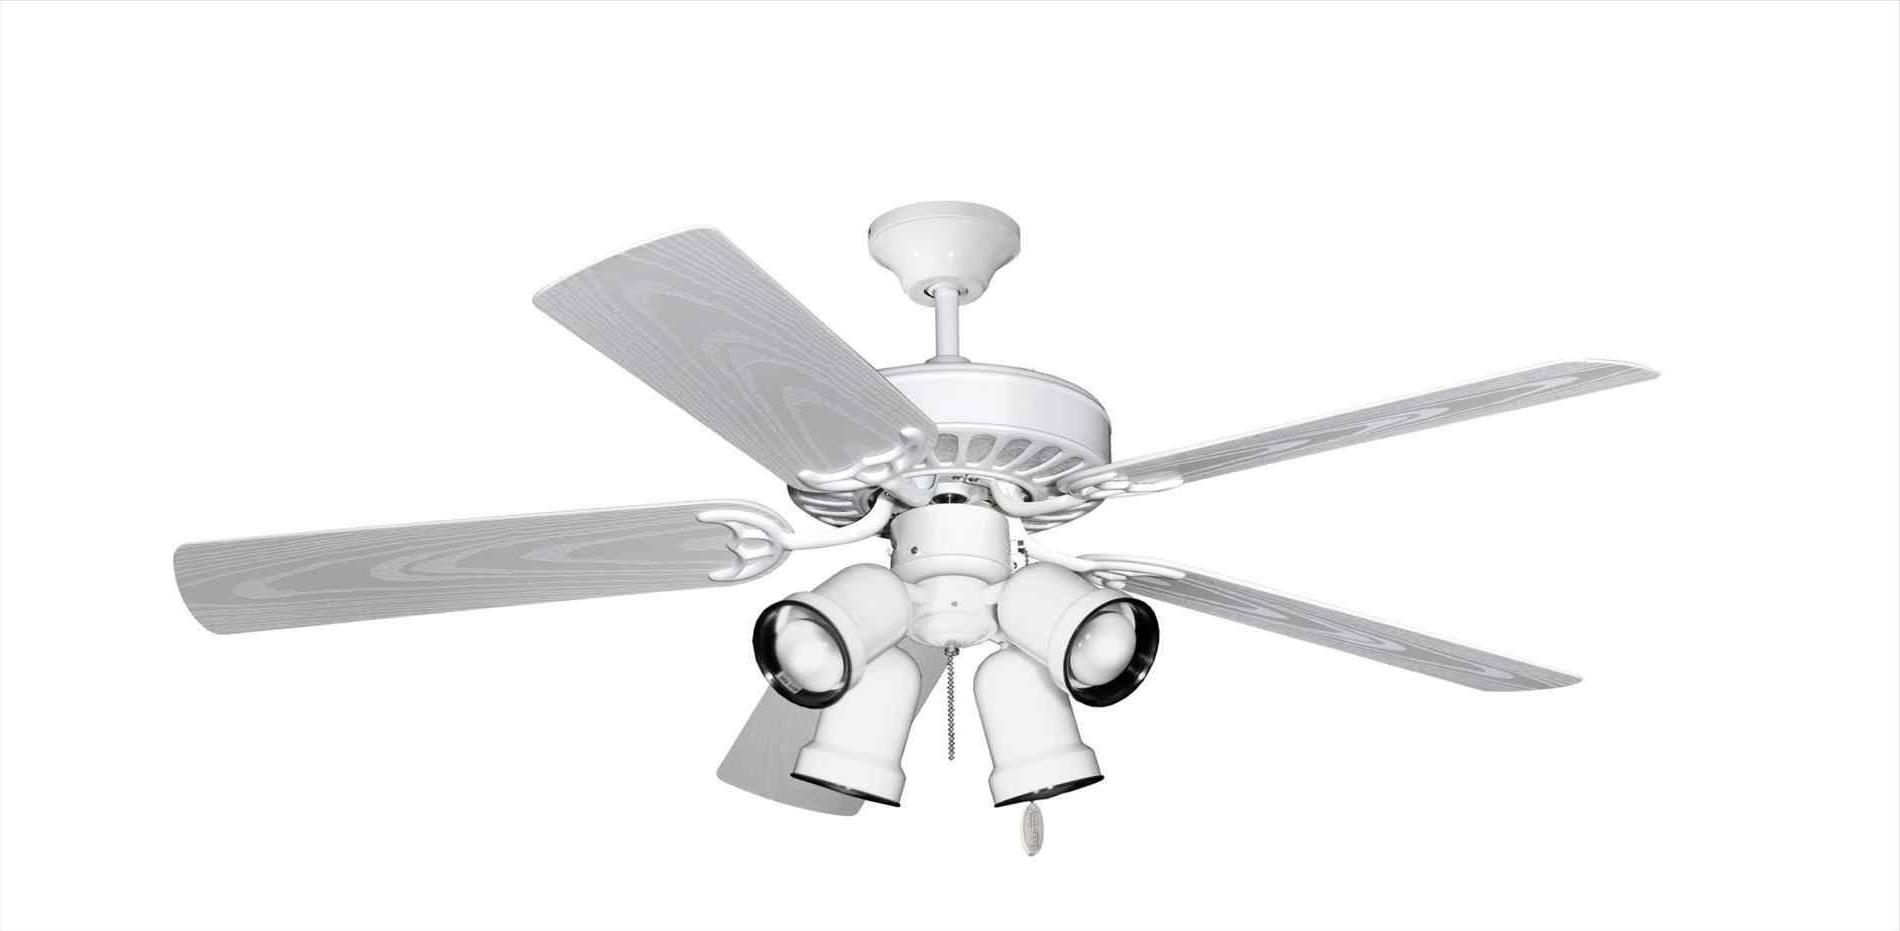 Most Current High Cfm Ceiling Fan – Pixball In Outdoor Ceiling Fans With High Cfm (View 11 of 20)